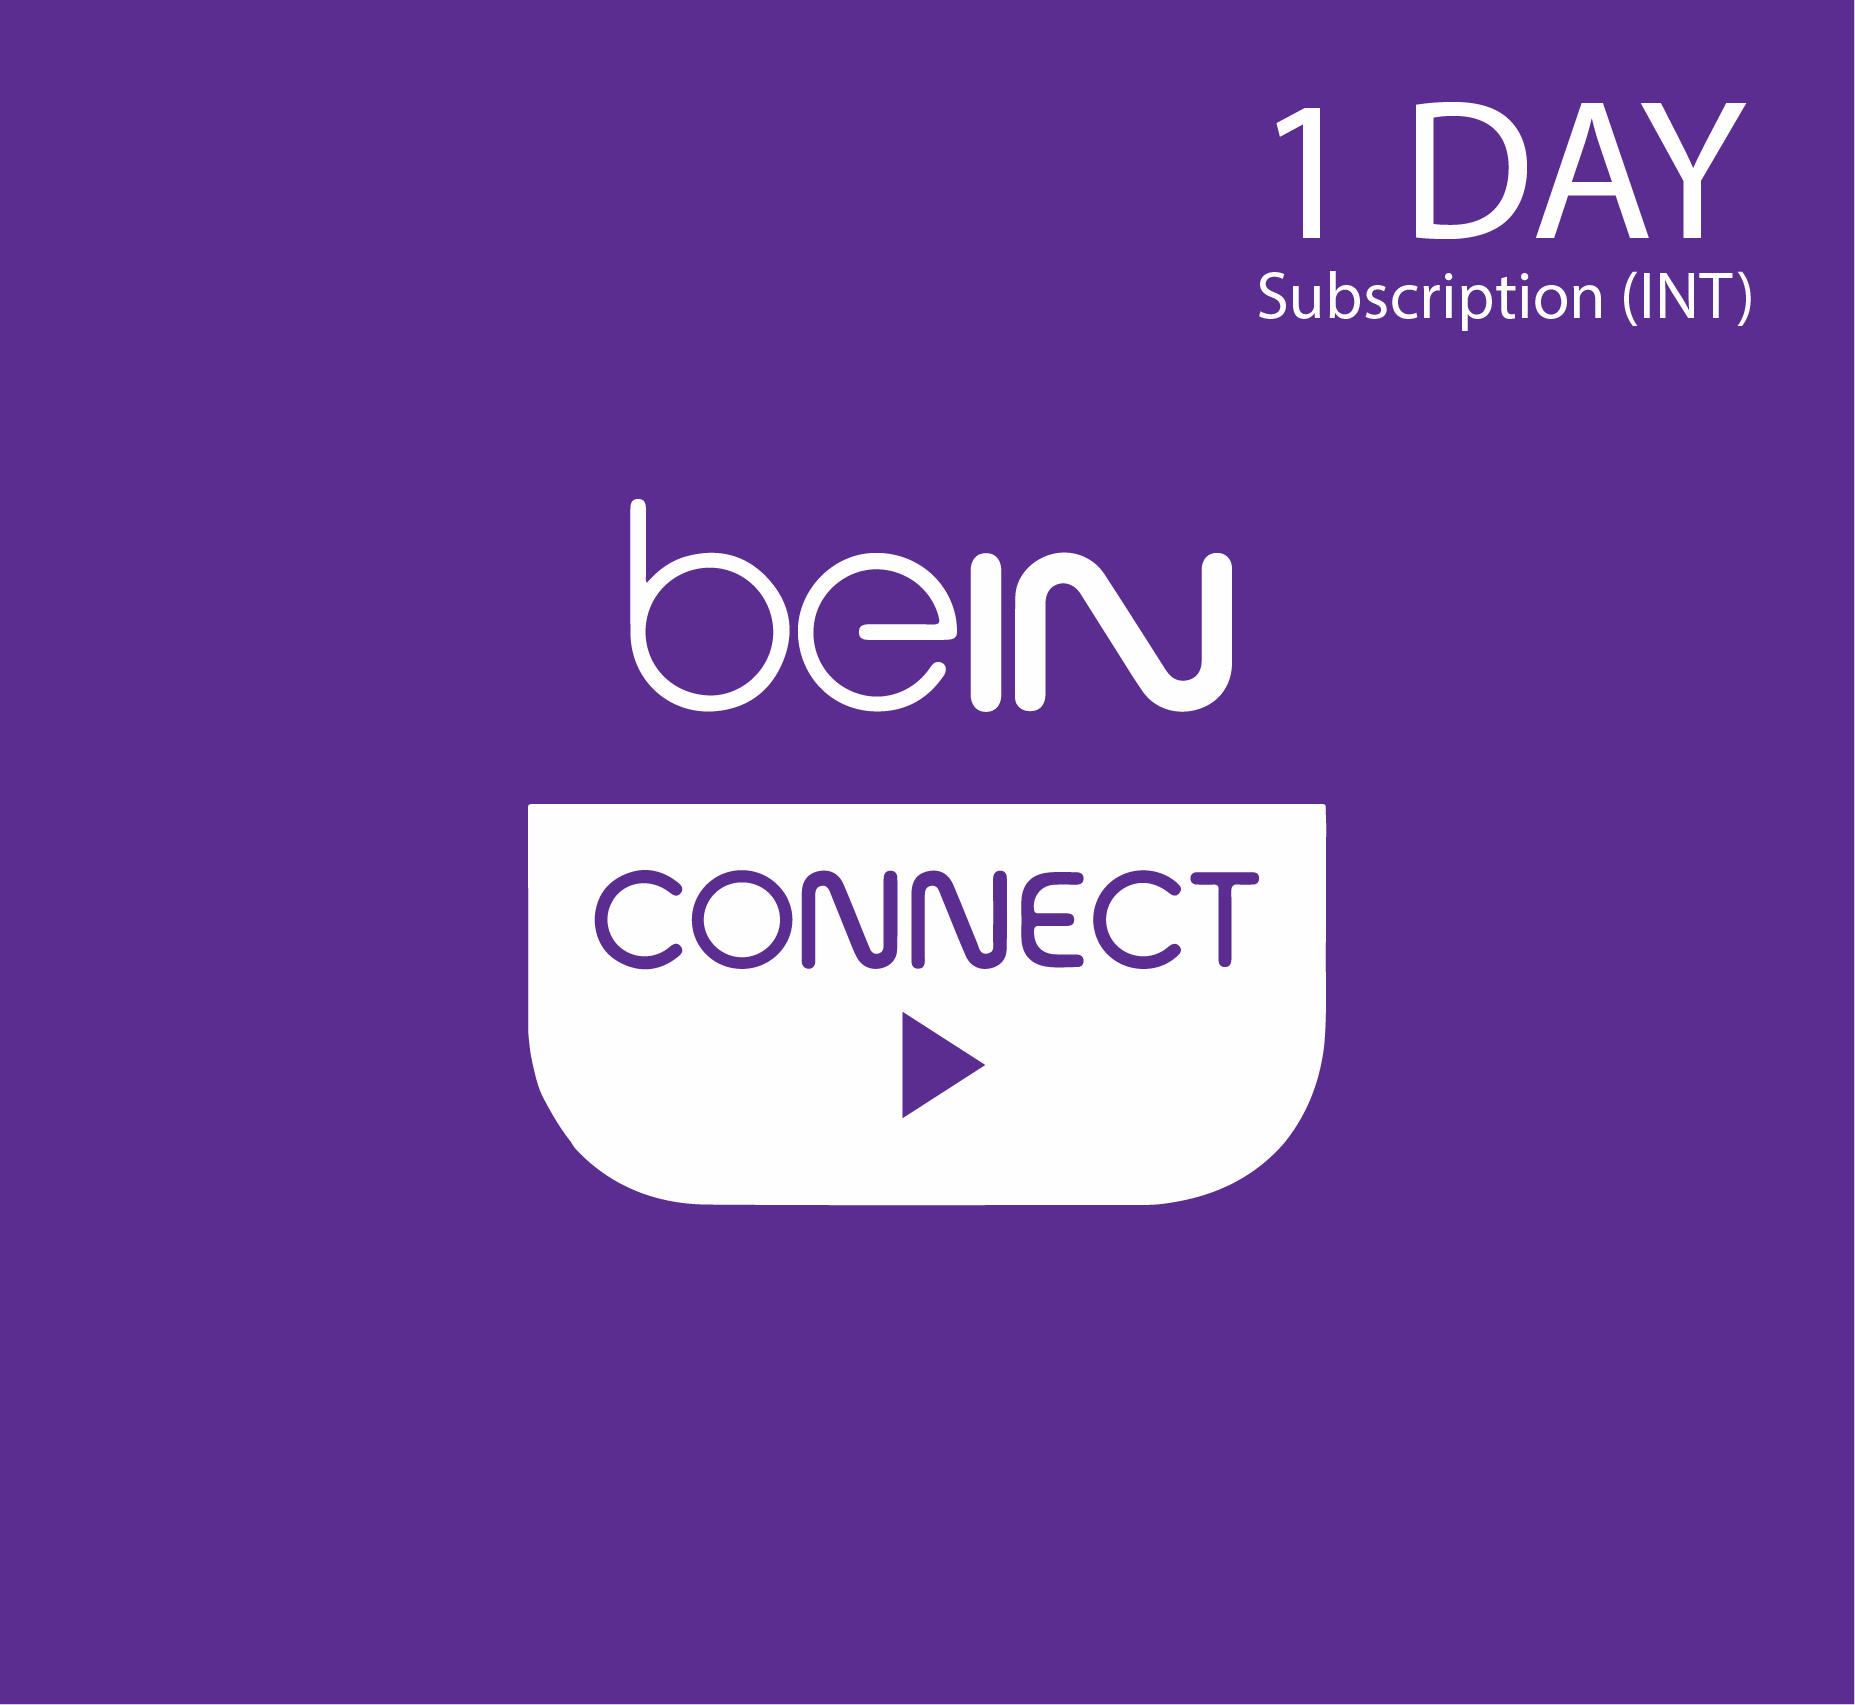 beIN Connect Subscription - 1 Day (INT)